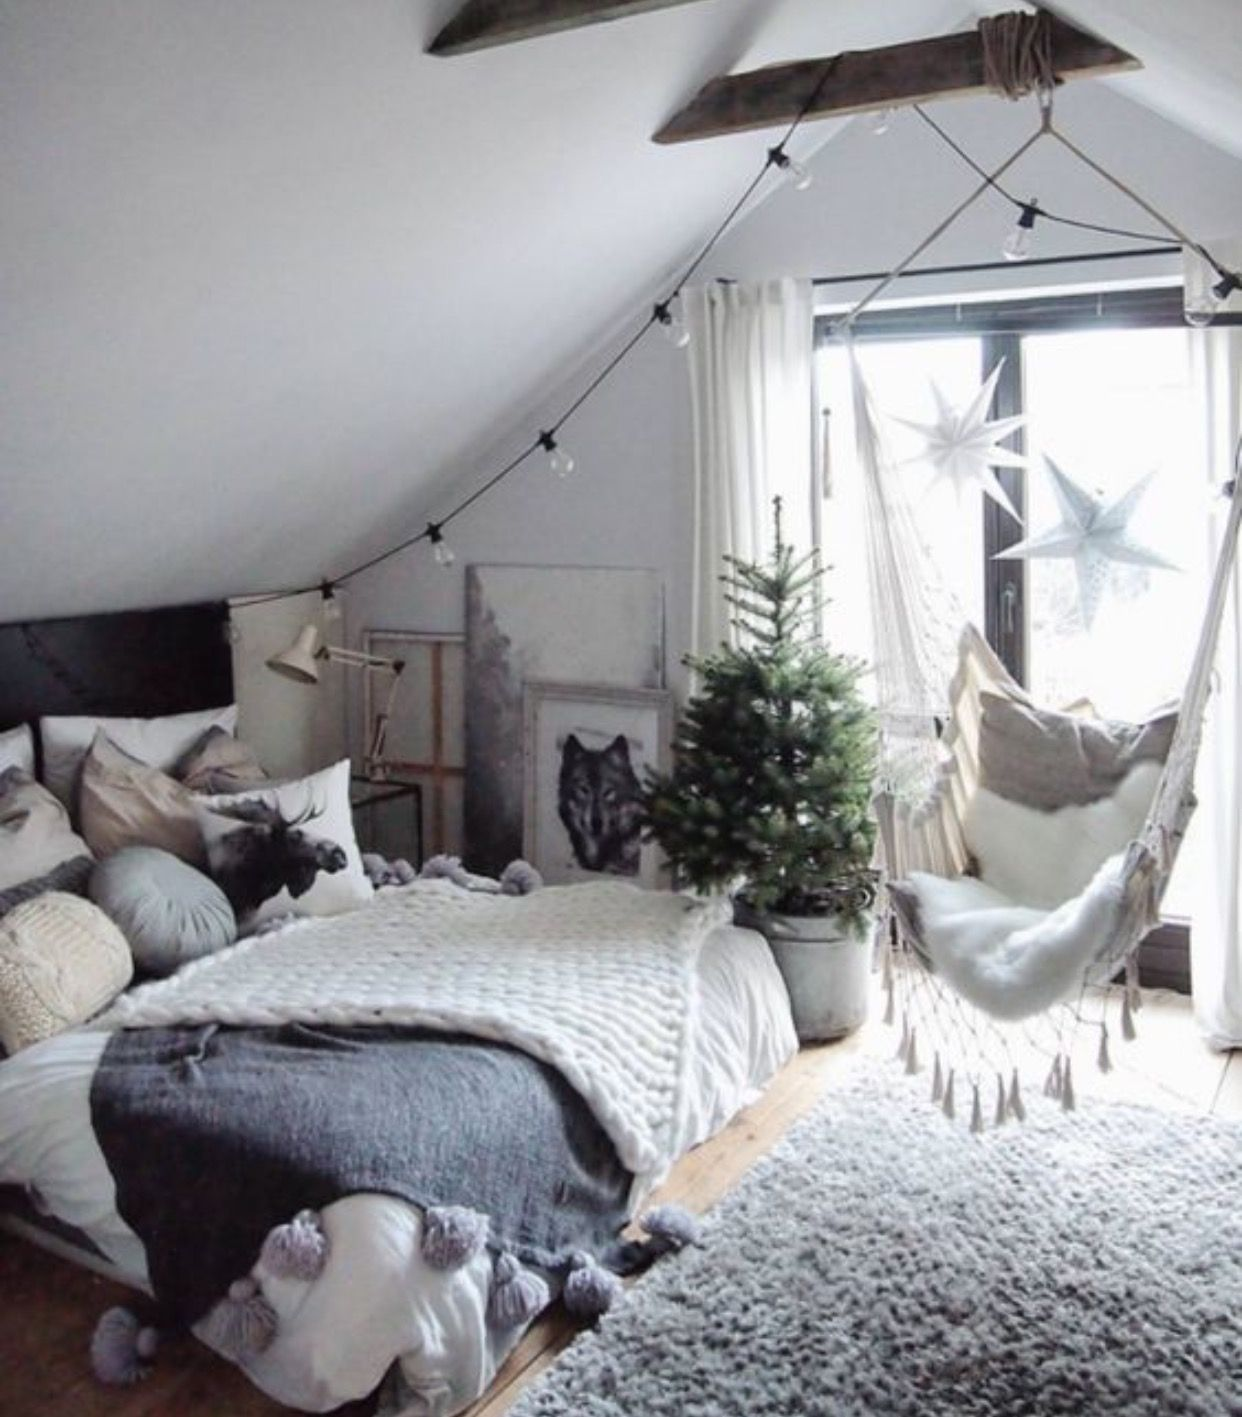 Hygge bohemian bedroom vibes | Dream rooms, Room inspiration ...